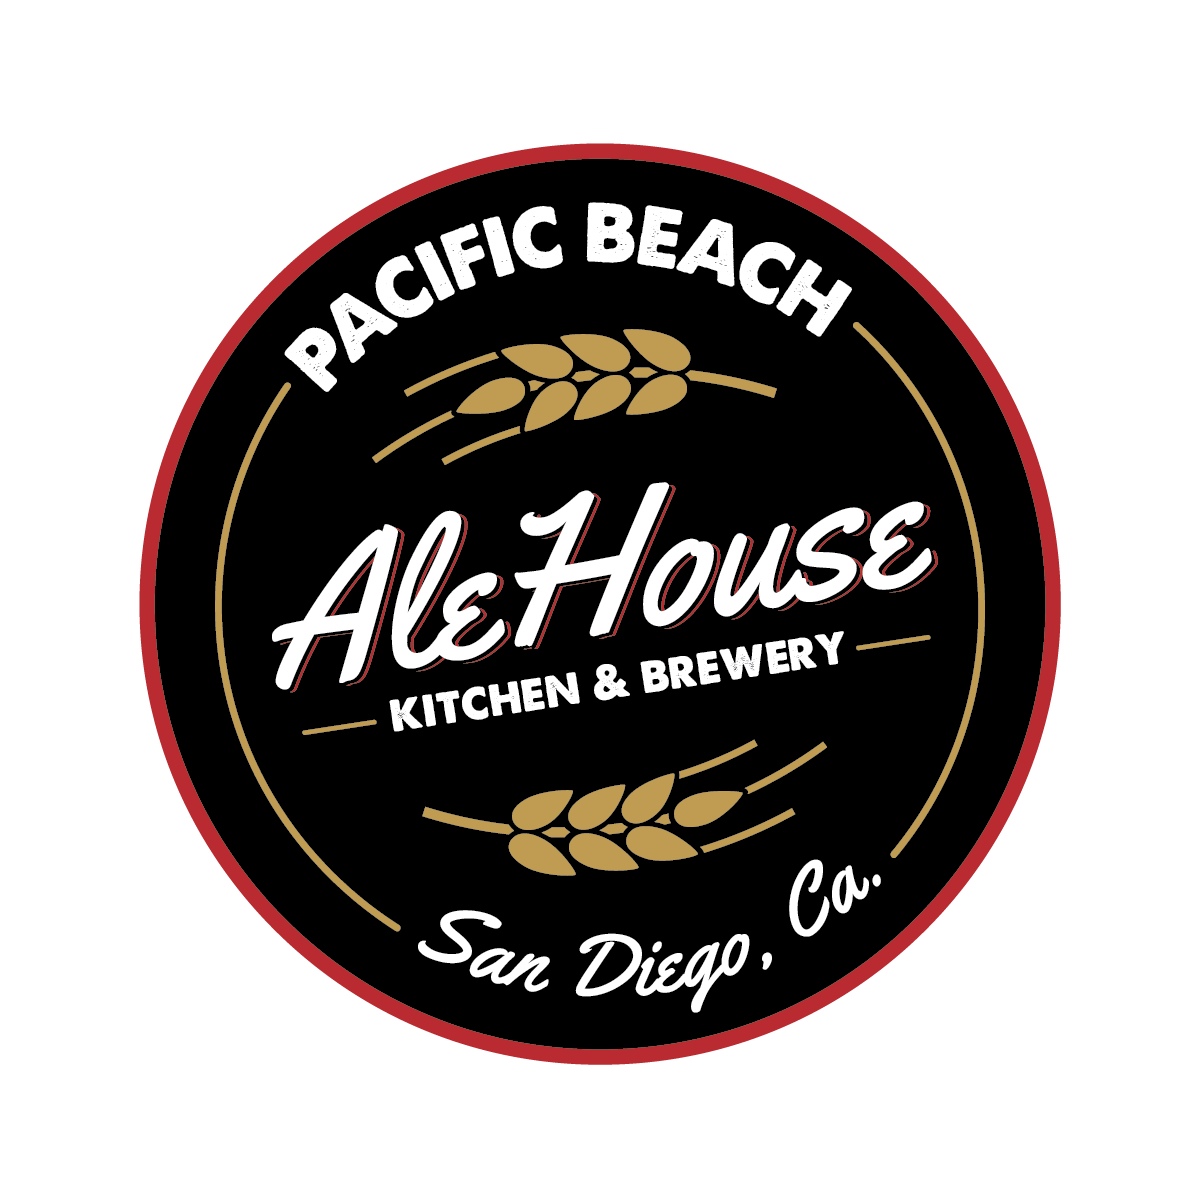 San Diego Pacific Beach Restaurant | PB Sports Bar